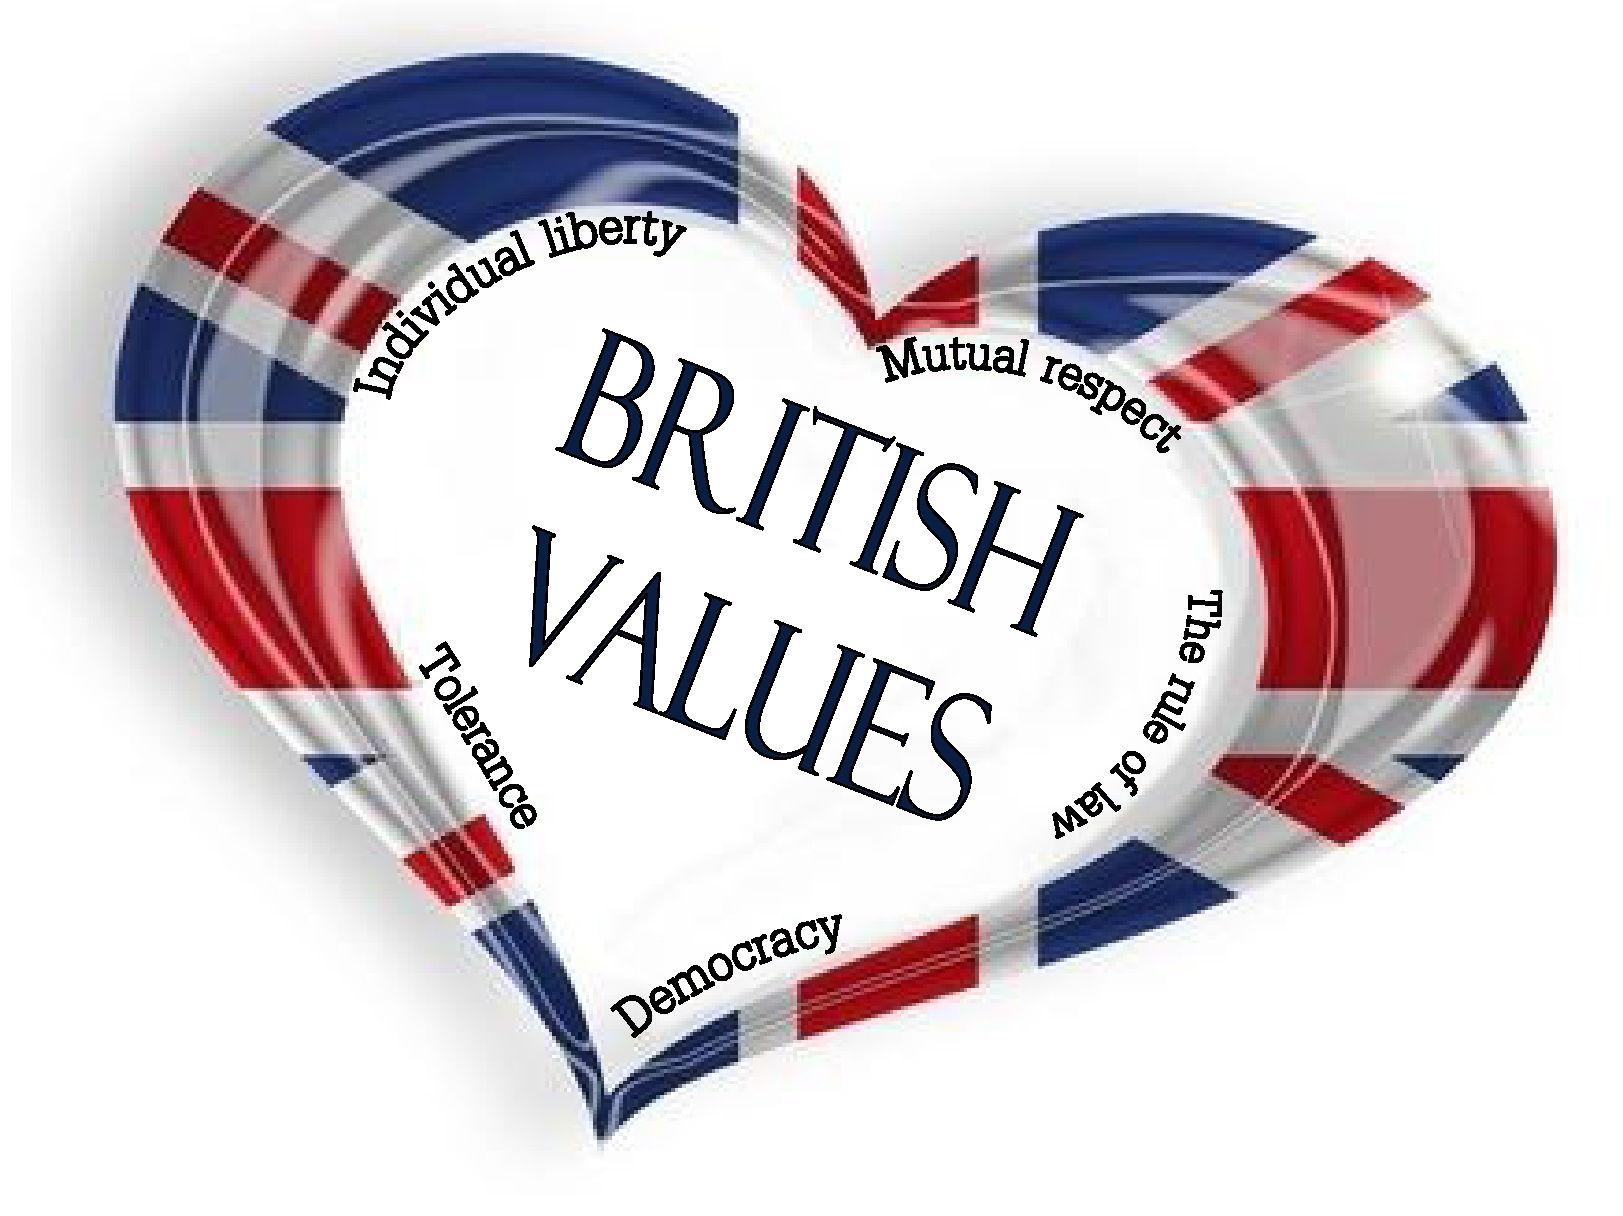 SMSC and British Values